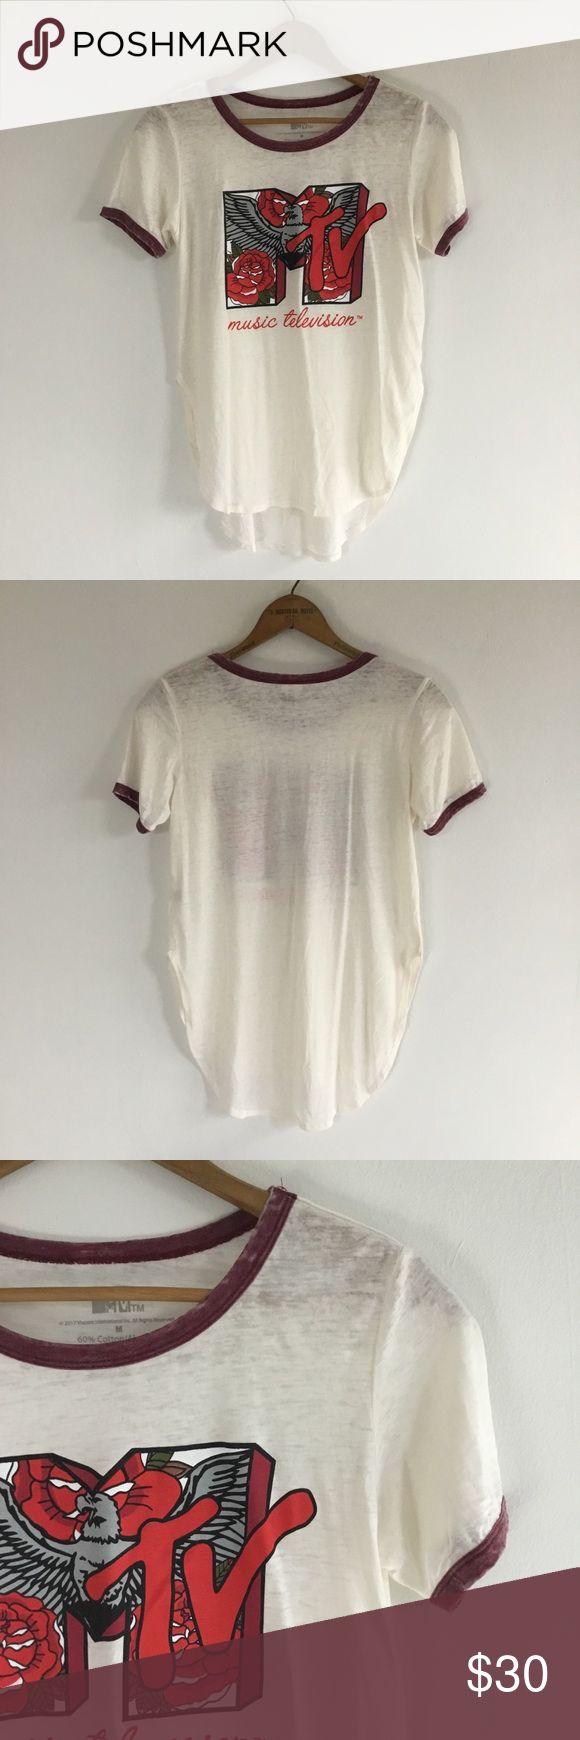 {MTV} Music Television Rose High Low Tee Shirt This shirt is new without tags. It has a small pull on the front. Otherwise in great condition. Size medium but runs small. MTV Tops Tees - Short Sleeve